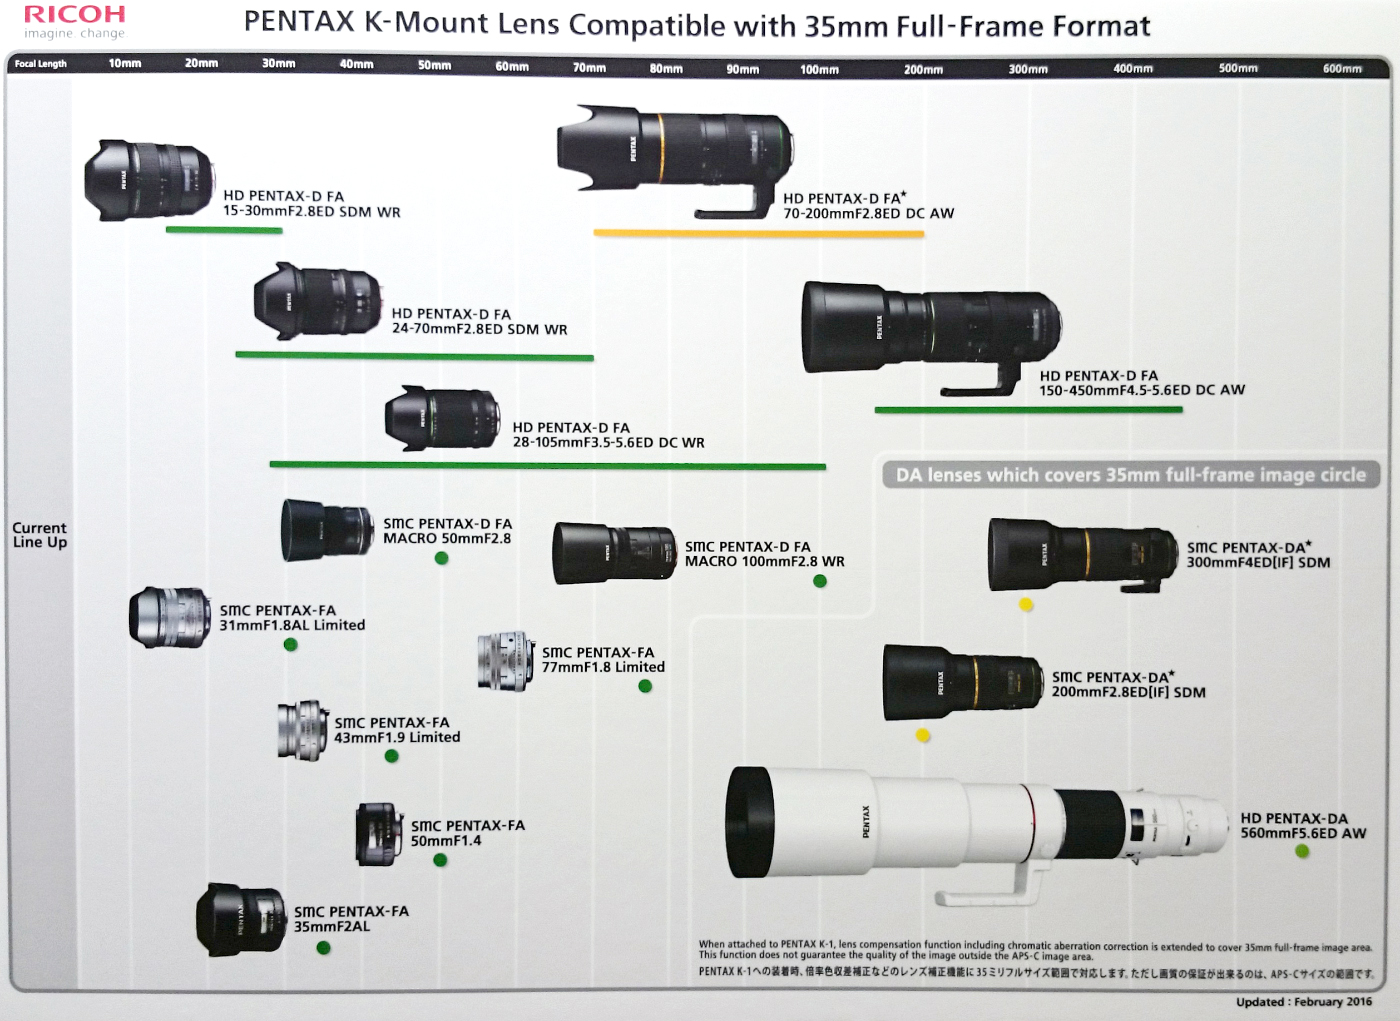 Pentax-DA 560mm F5.6 ED AW Review - Full Frame Compatibility ...